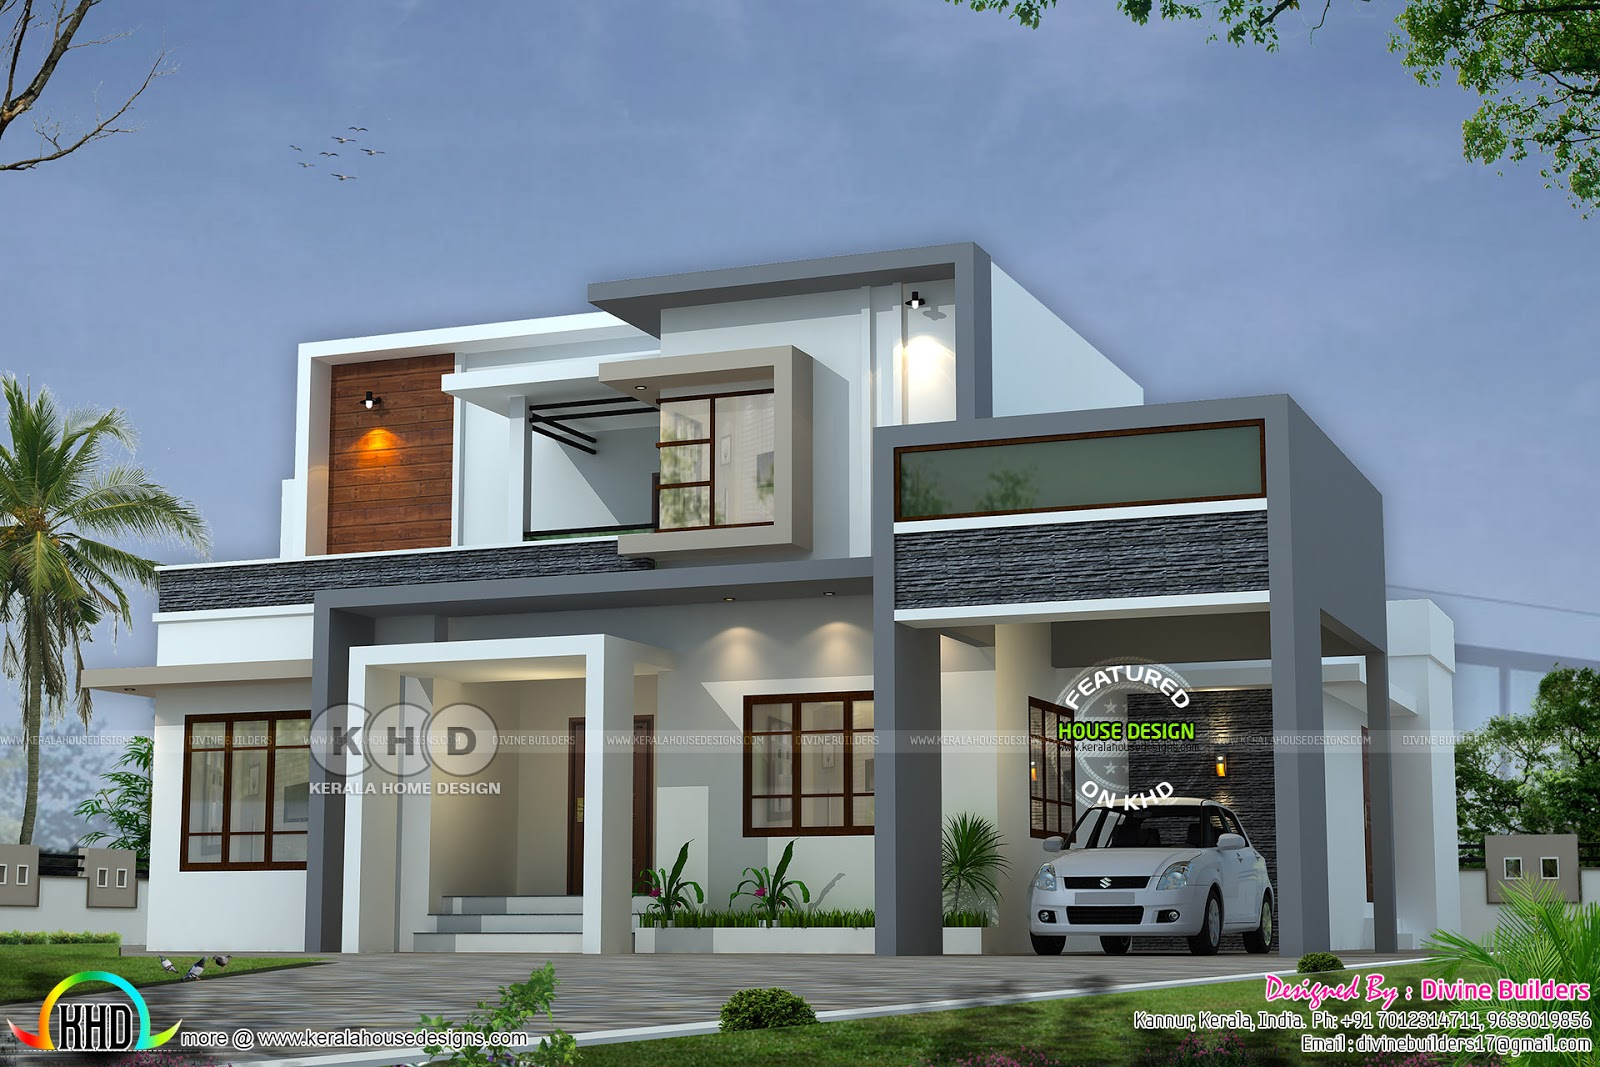 2017 kerala home design and floor plans for Home plans with pictures